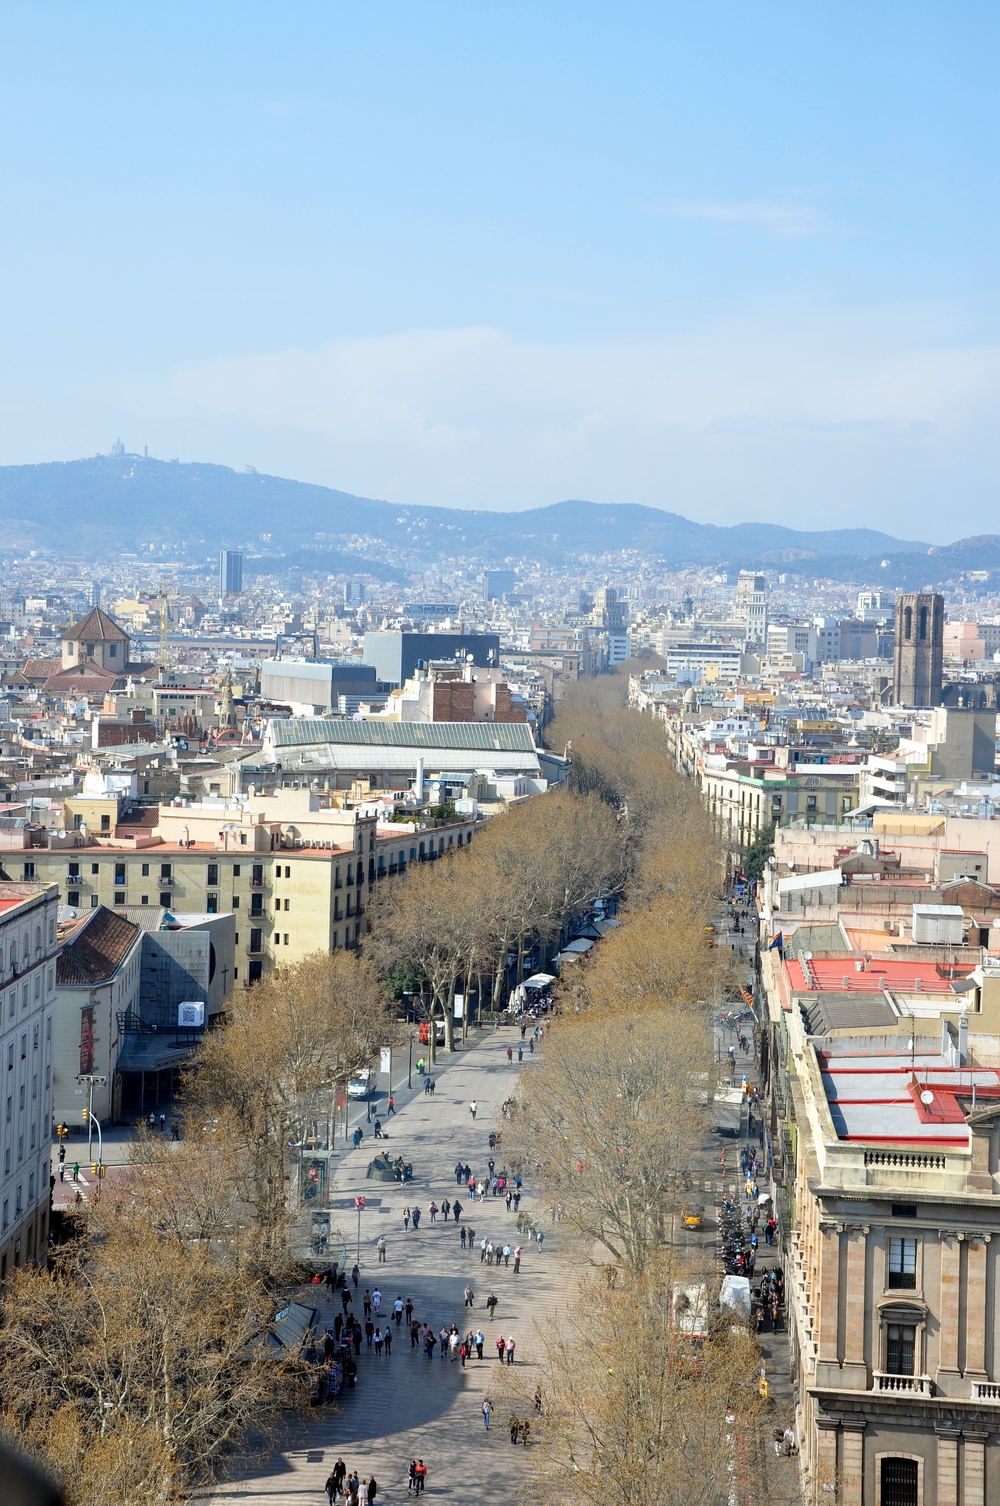 A view of La Rambla from the top of the Columbus Monument.